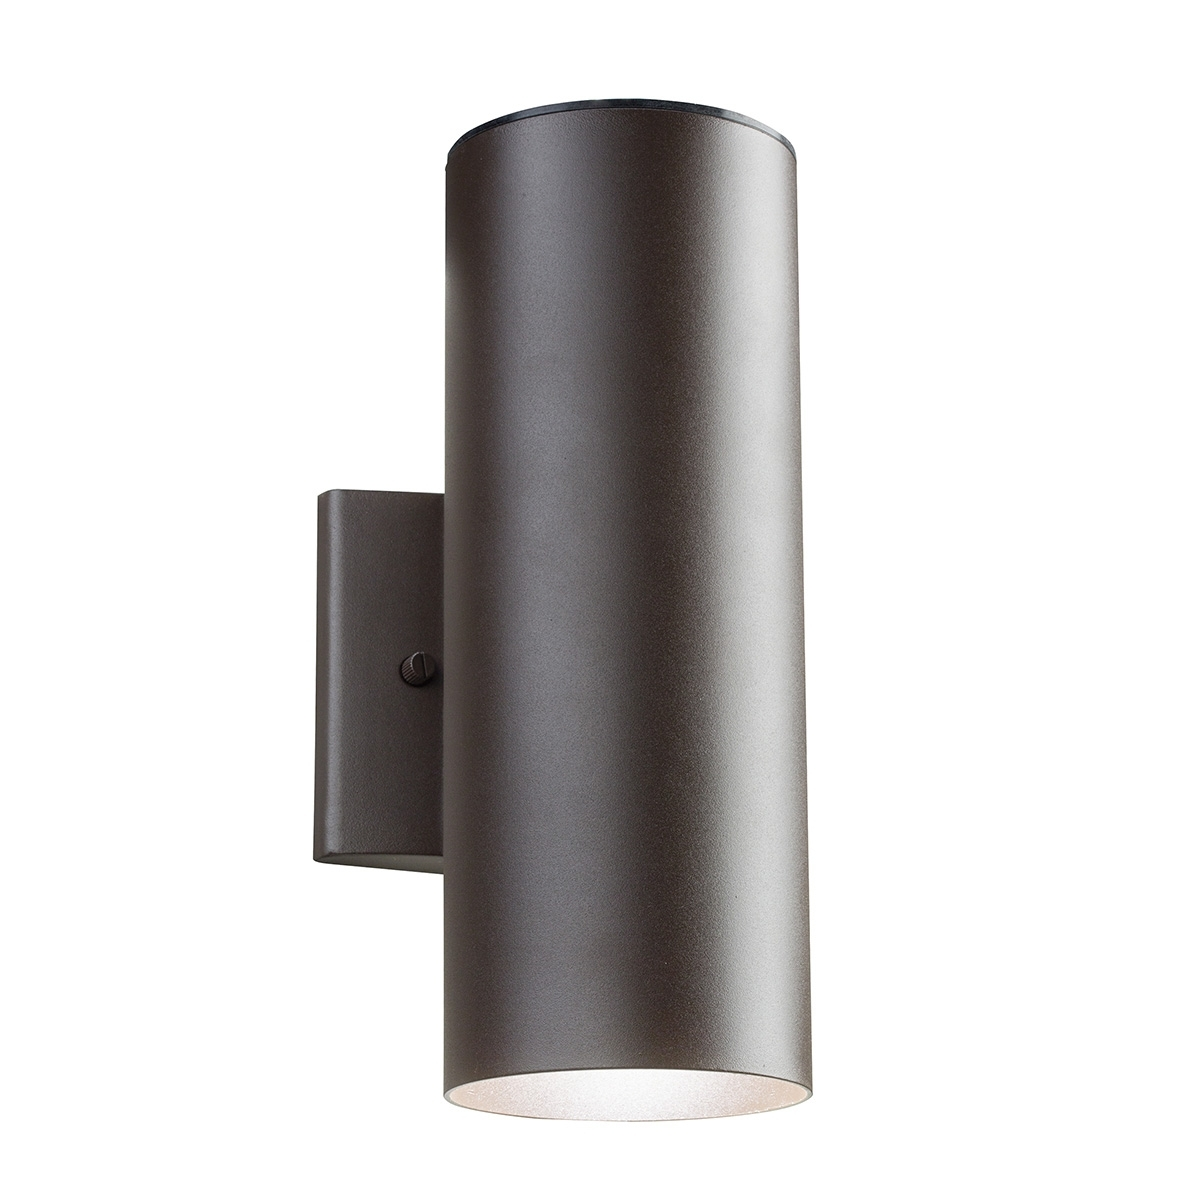 Inspiration about Unique Up And Down Lighting Wall Sconce 41 For Your Wall Lights Inside Brisbane Outdoor Wall Lighting (#1 of 15)